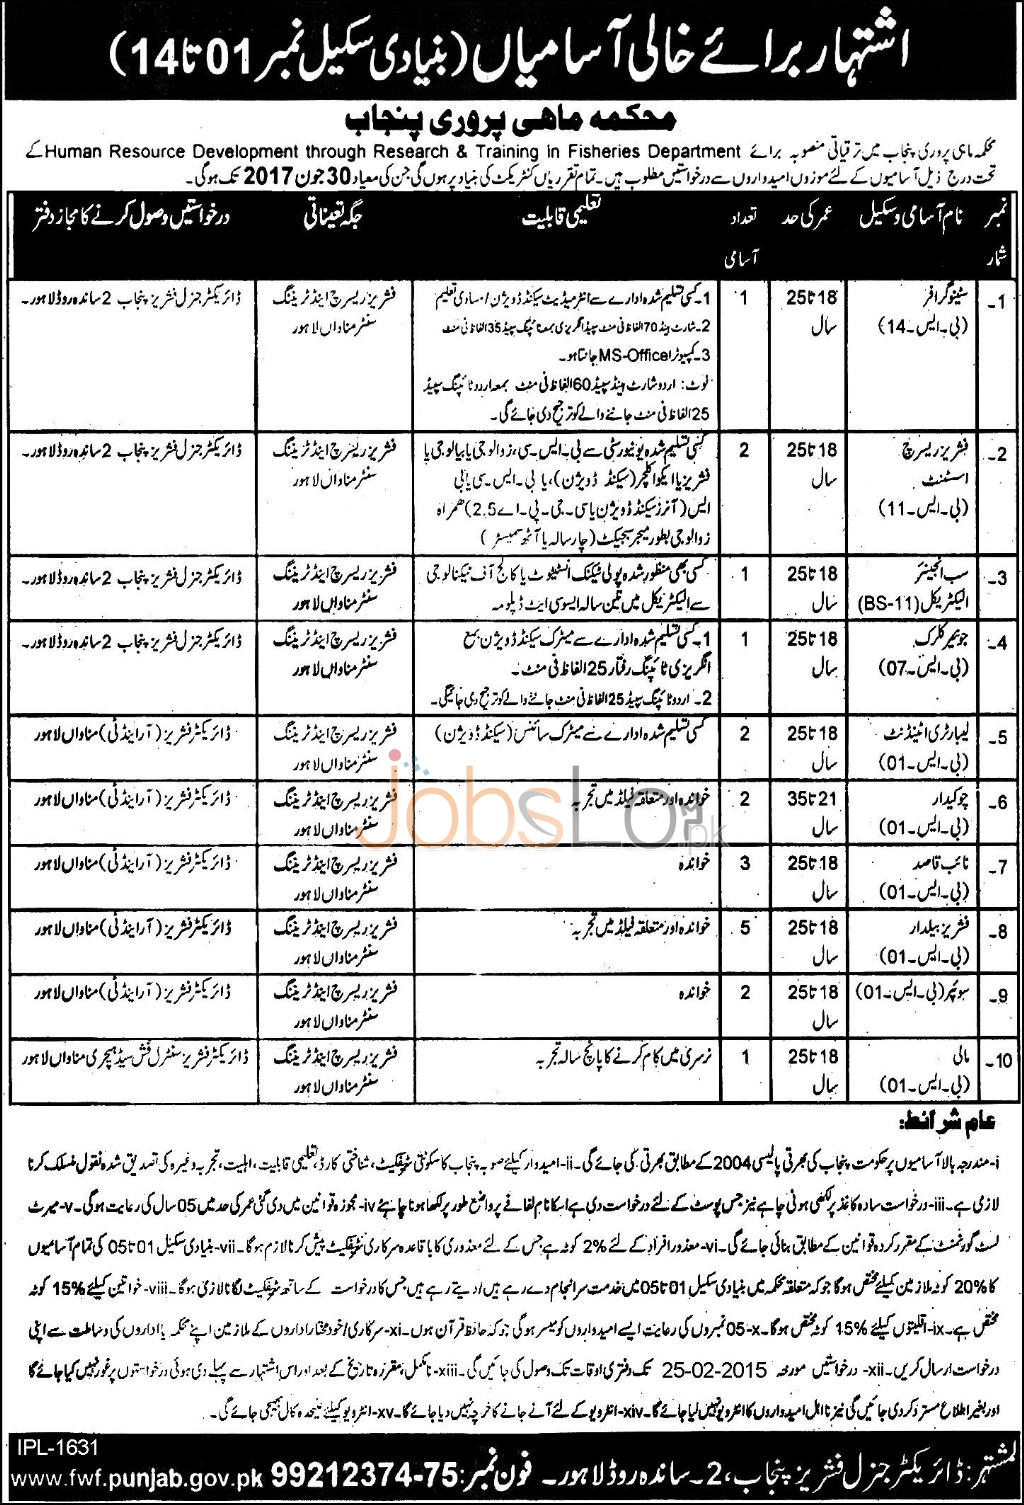 Forestry Wildlife & Fisheries Department Punjab Jobs